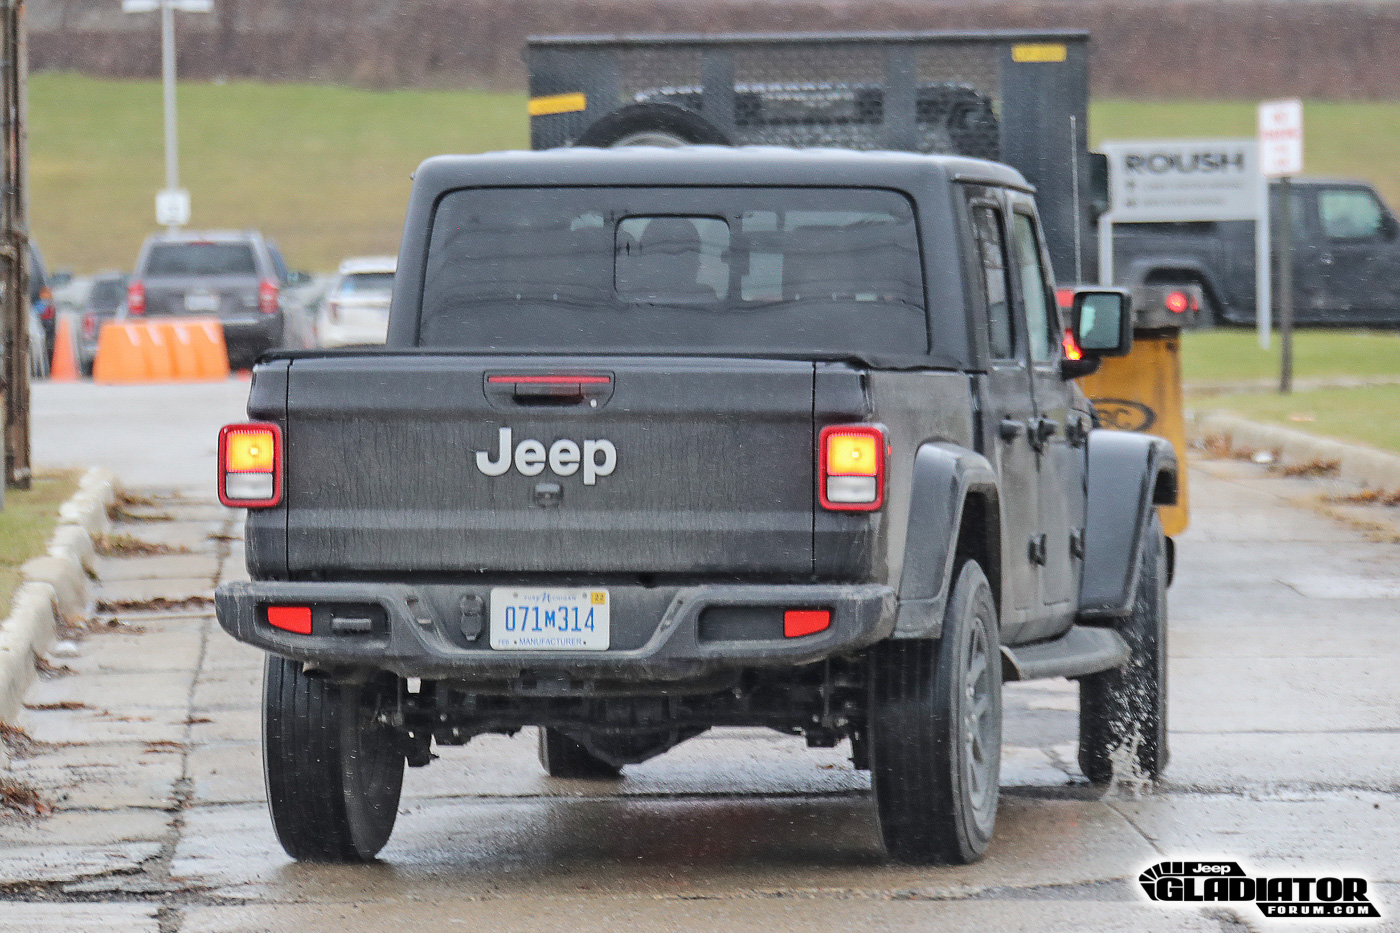 2020-Jeep-Gladiator-JT-Pickup-Truck-Spotted-Undisguised-8.jpg